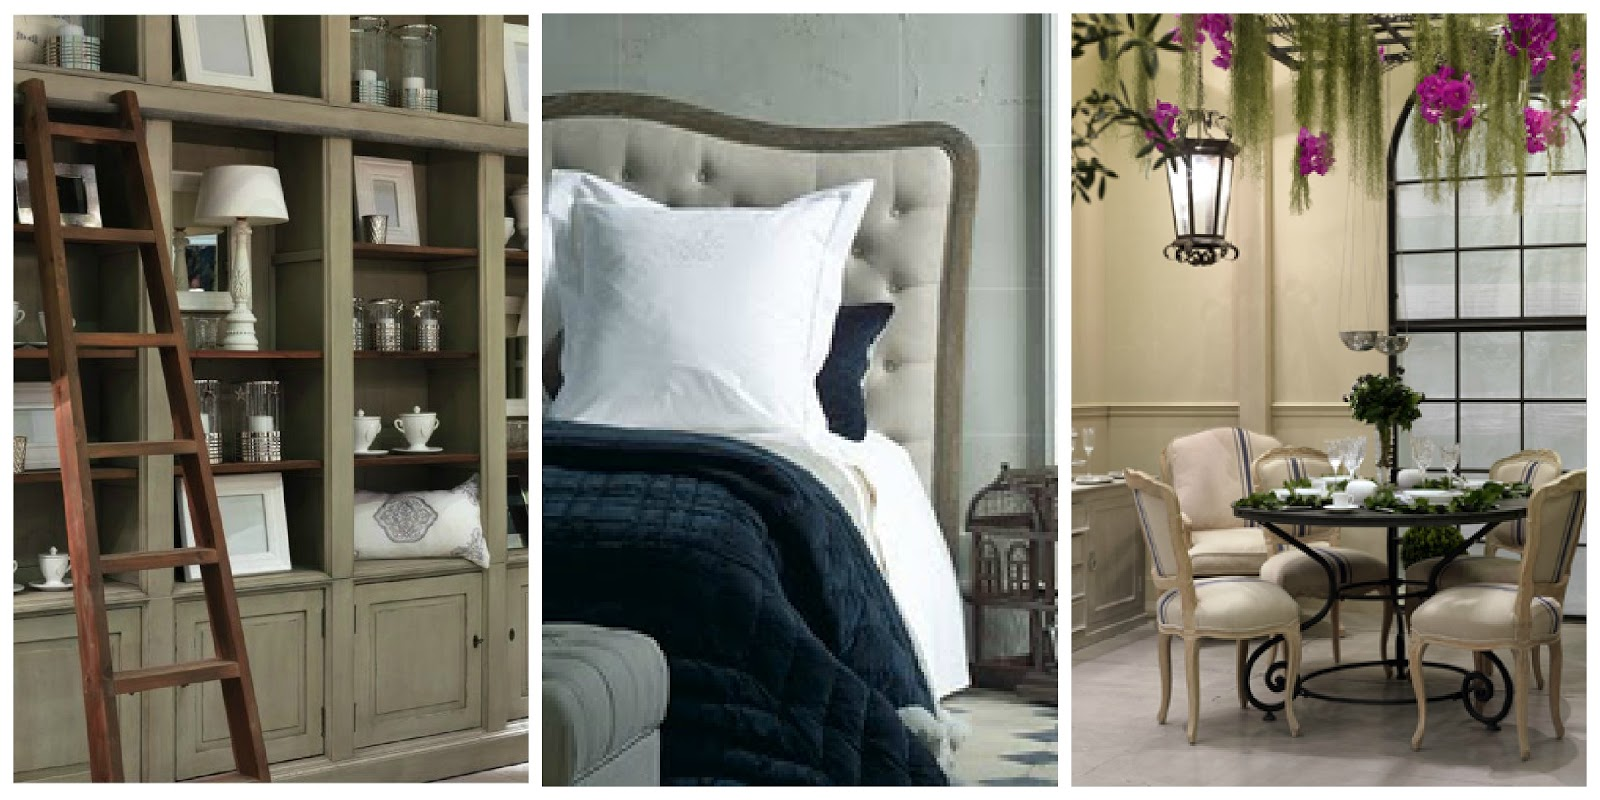 il giardino di fasti floreali la casa arredata secondo blanc d 39 ivoire. Black Bedroom Furniture Sets. Home Design Ideas